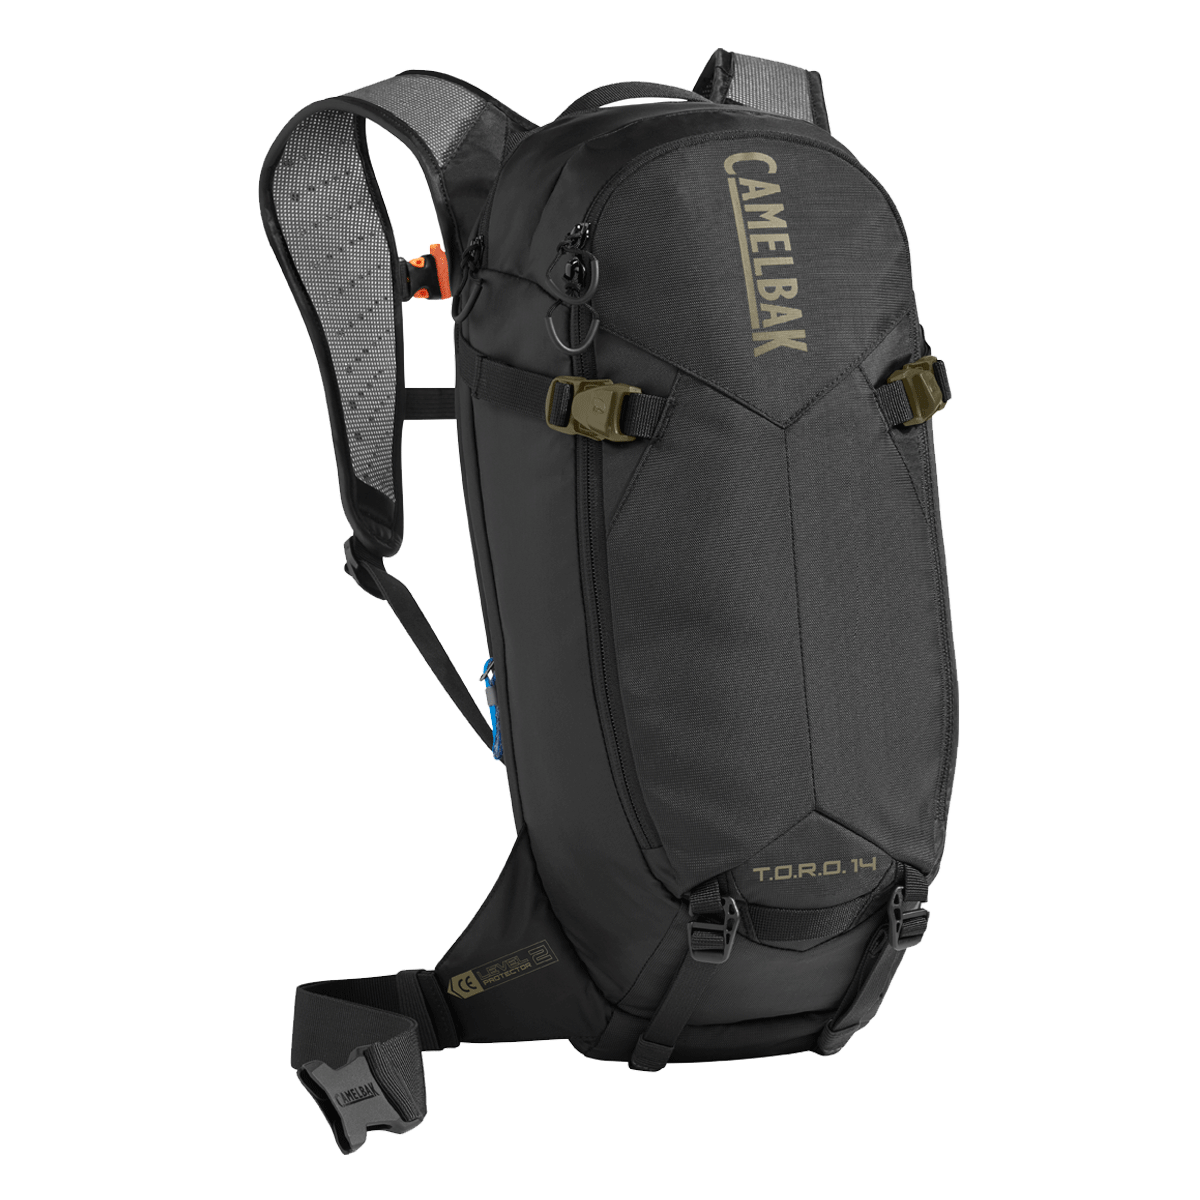 Camelbak Accessories > Bags & Seatpacks Burnt Olive / Black CAMELBAK TORO PROTECTOR 14 DRY HYDRATION PACK